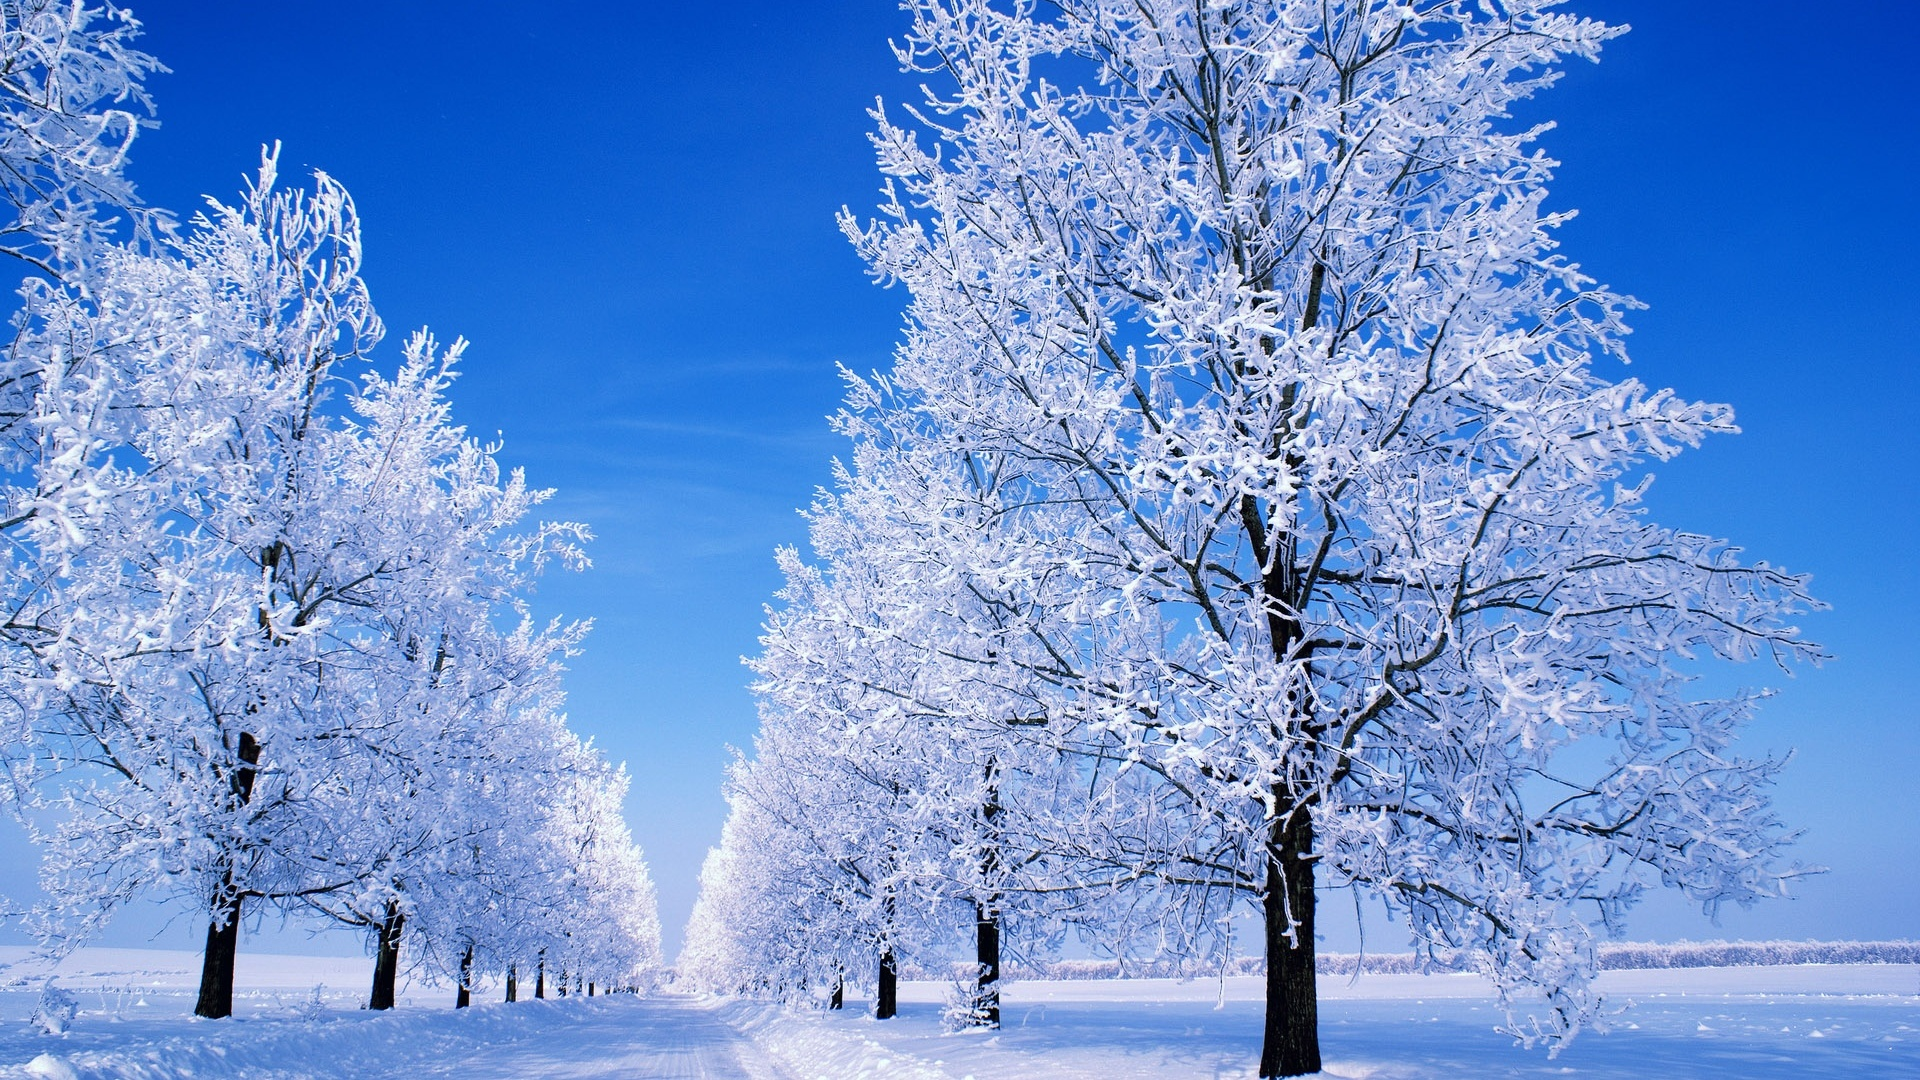 Winter Scene wallpaperhighresolutionxyz 1920x1080